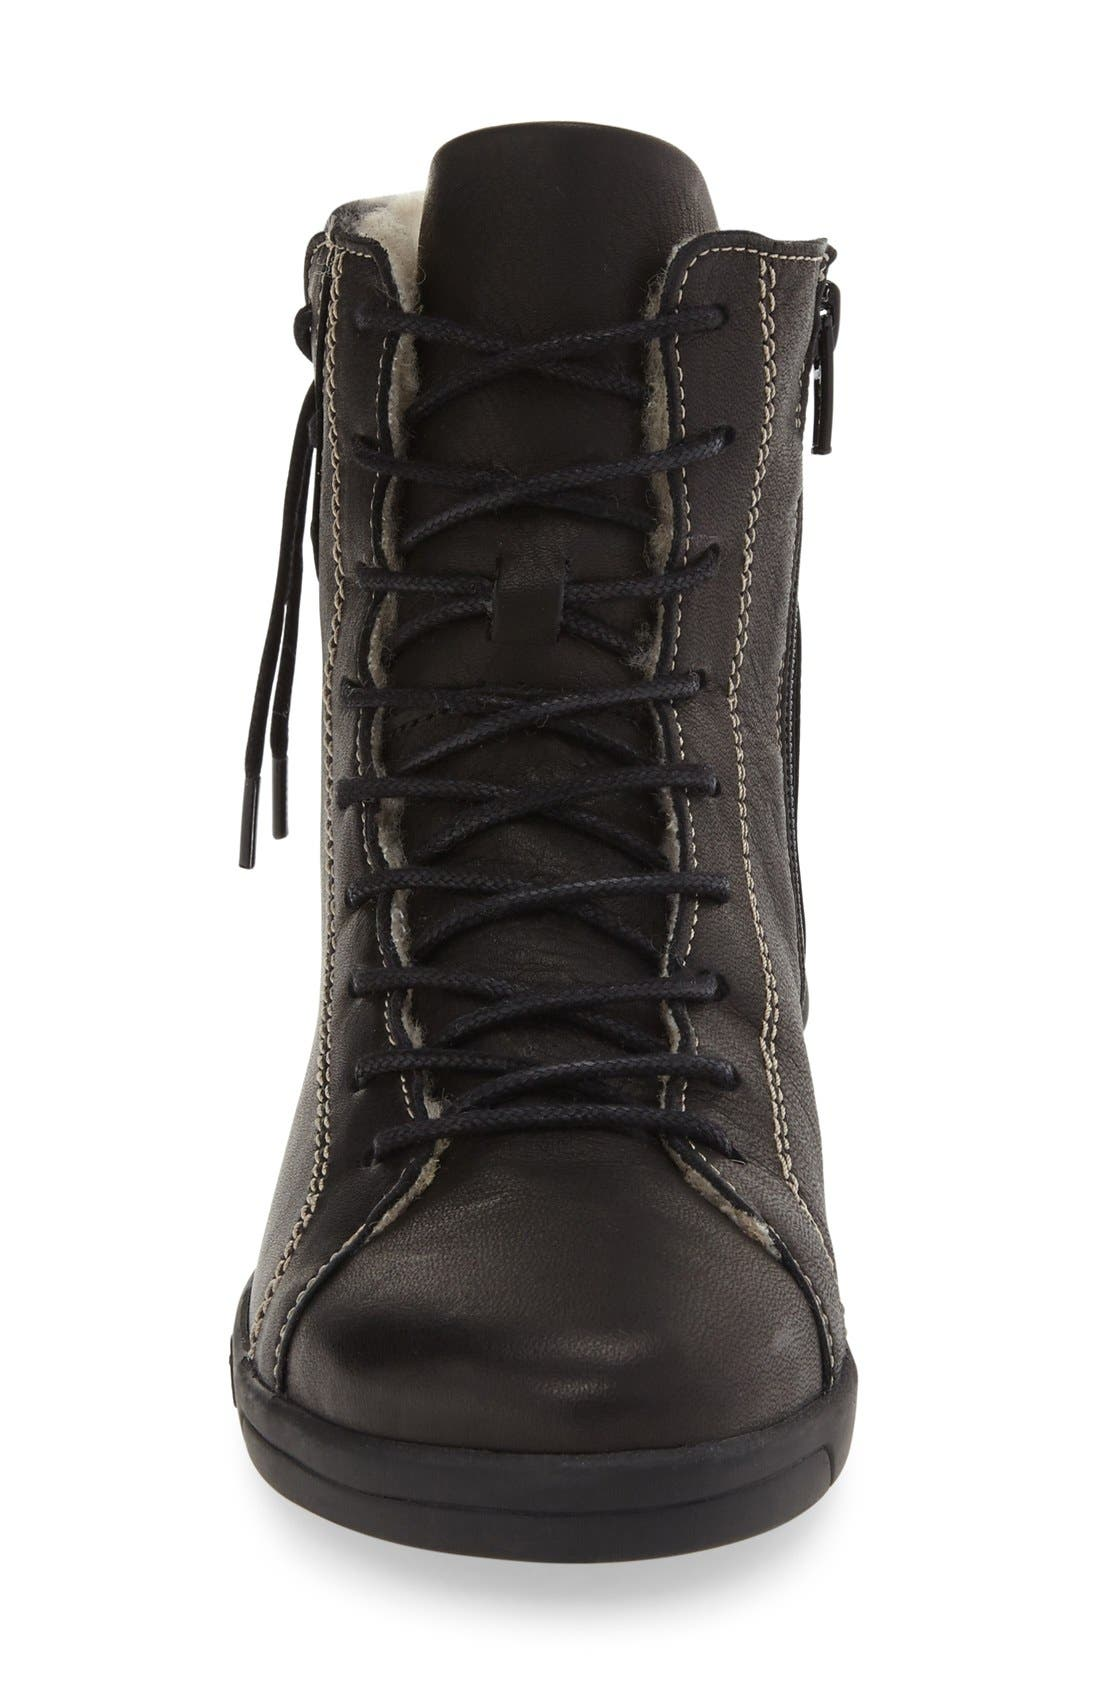 'Astrid' High Top Sneaker,                             Alternate thumbnail 4, color,                             Black Leather